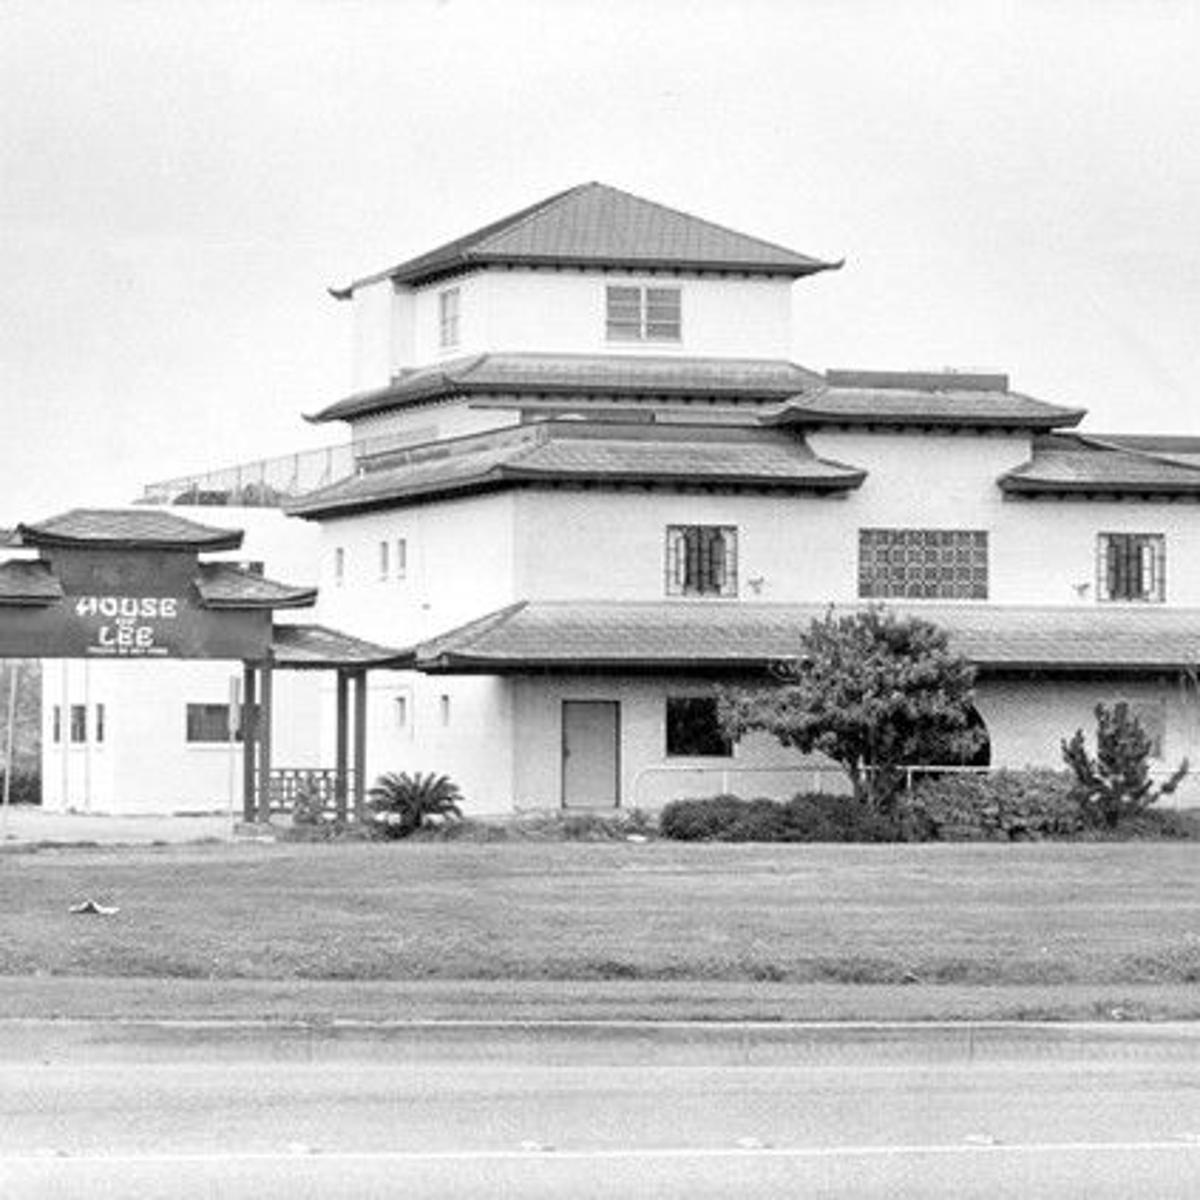 Do You Remember House Of Lee In Metairie A Lost Restaurant